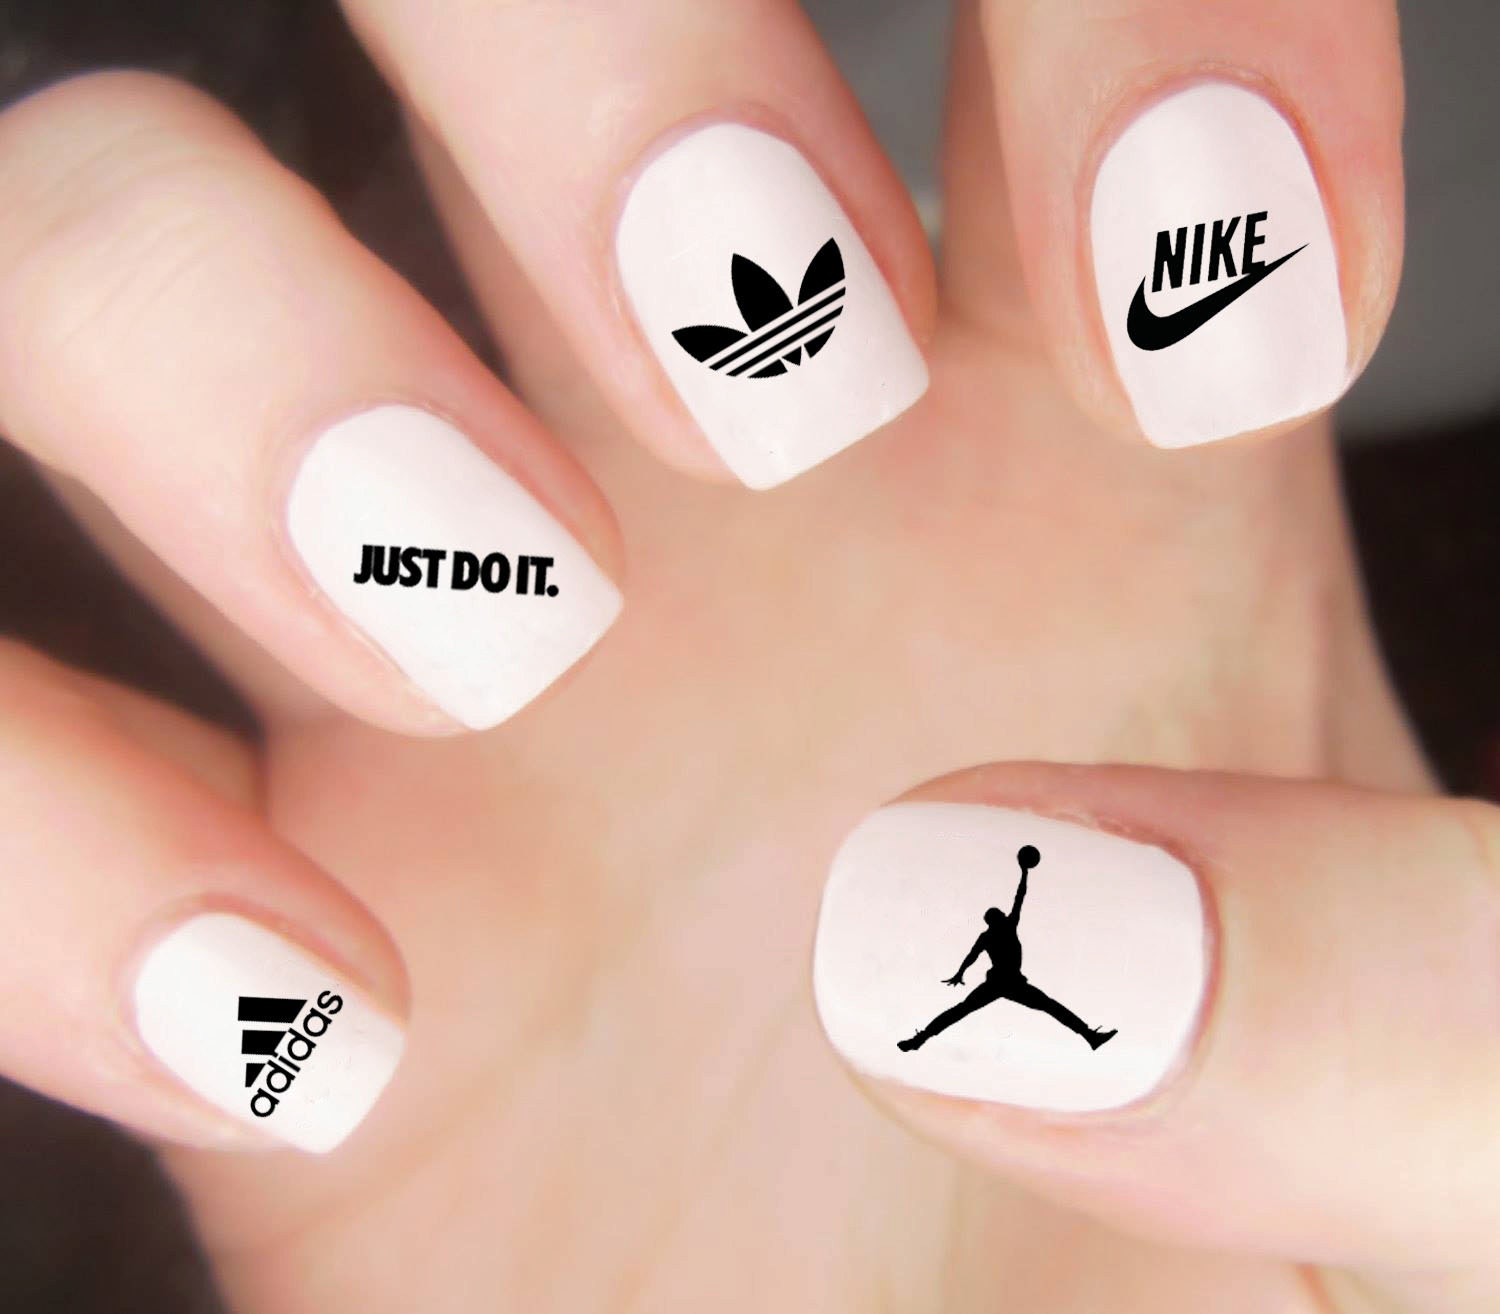 Air Jordan Nail Decal / Nike Nail Decal / Adidas Nails / Athletic ...